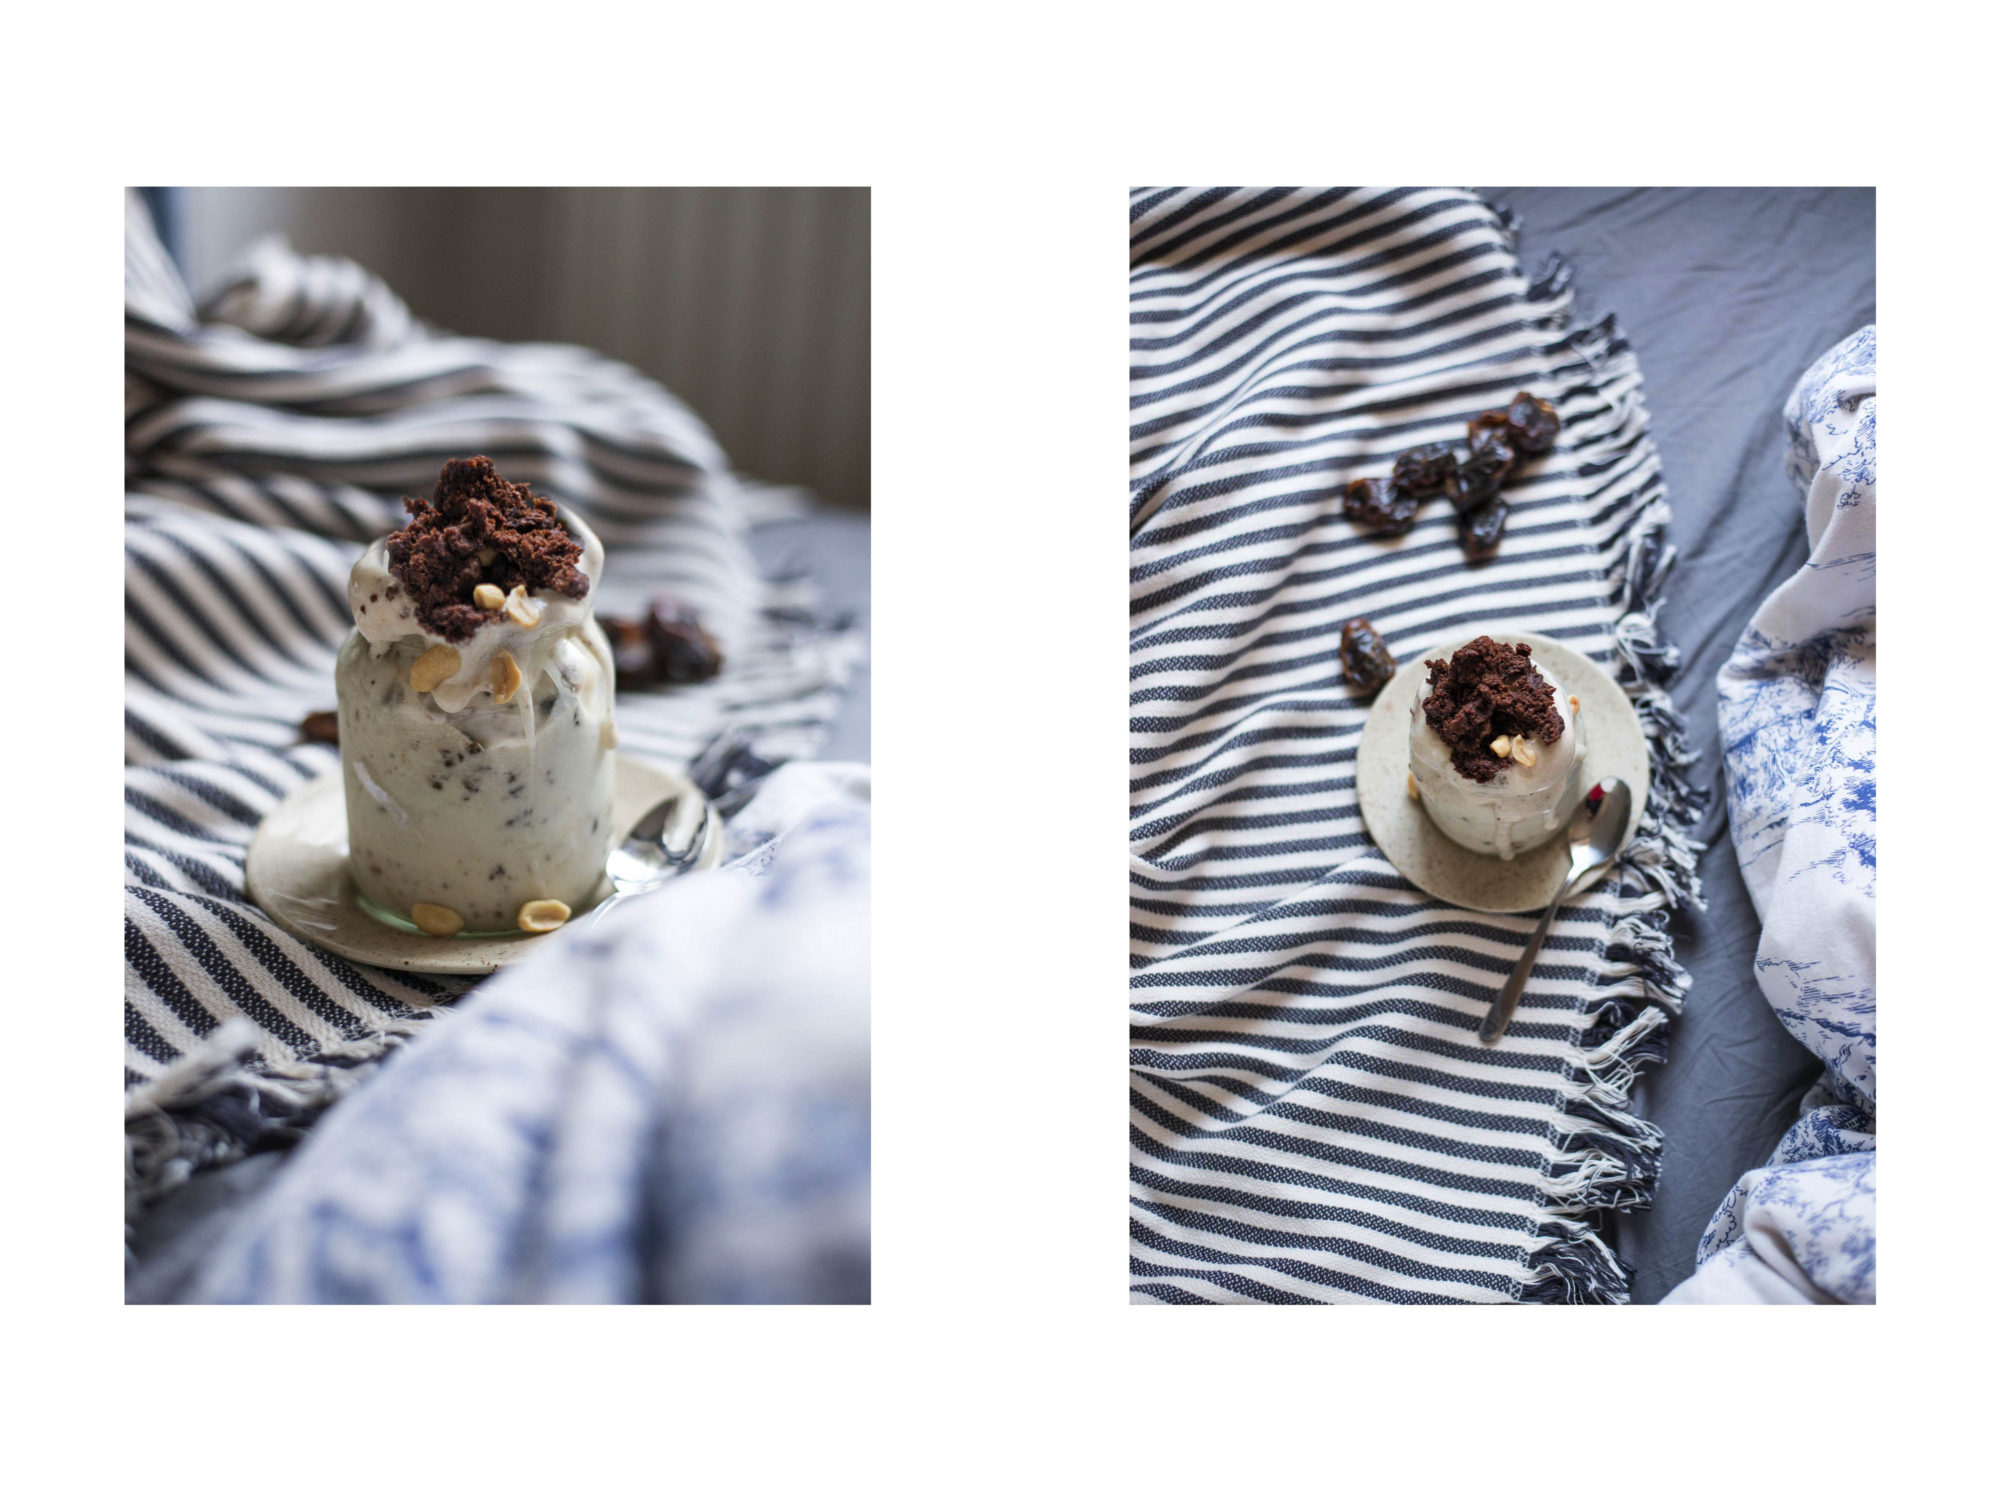 Brownies and Cream Nicecream | Vegan, gluten-frei, zucker-frei Bananen Kokoscreme Erdnuss